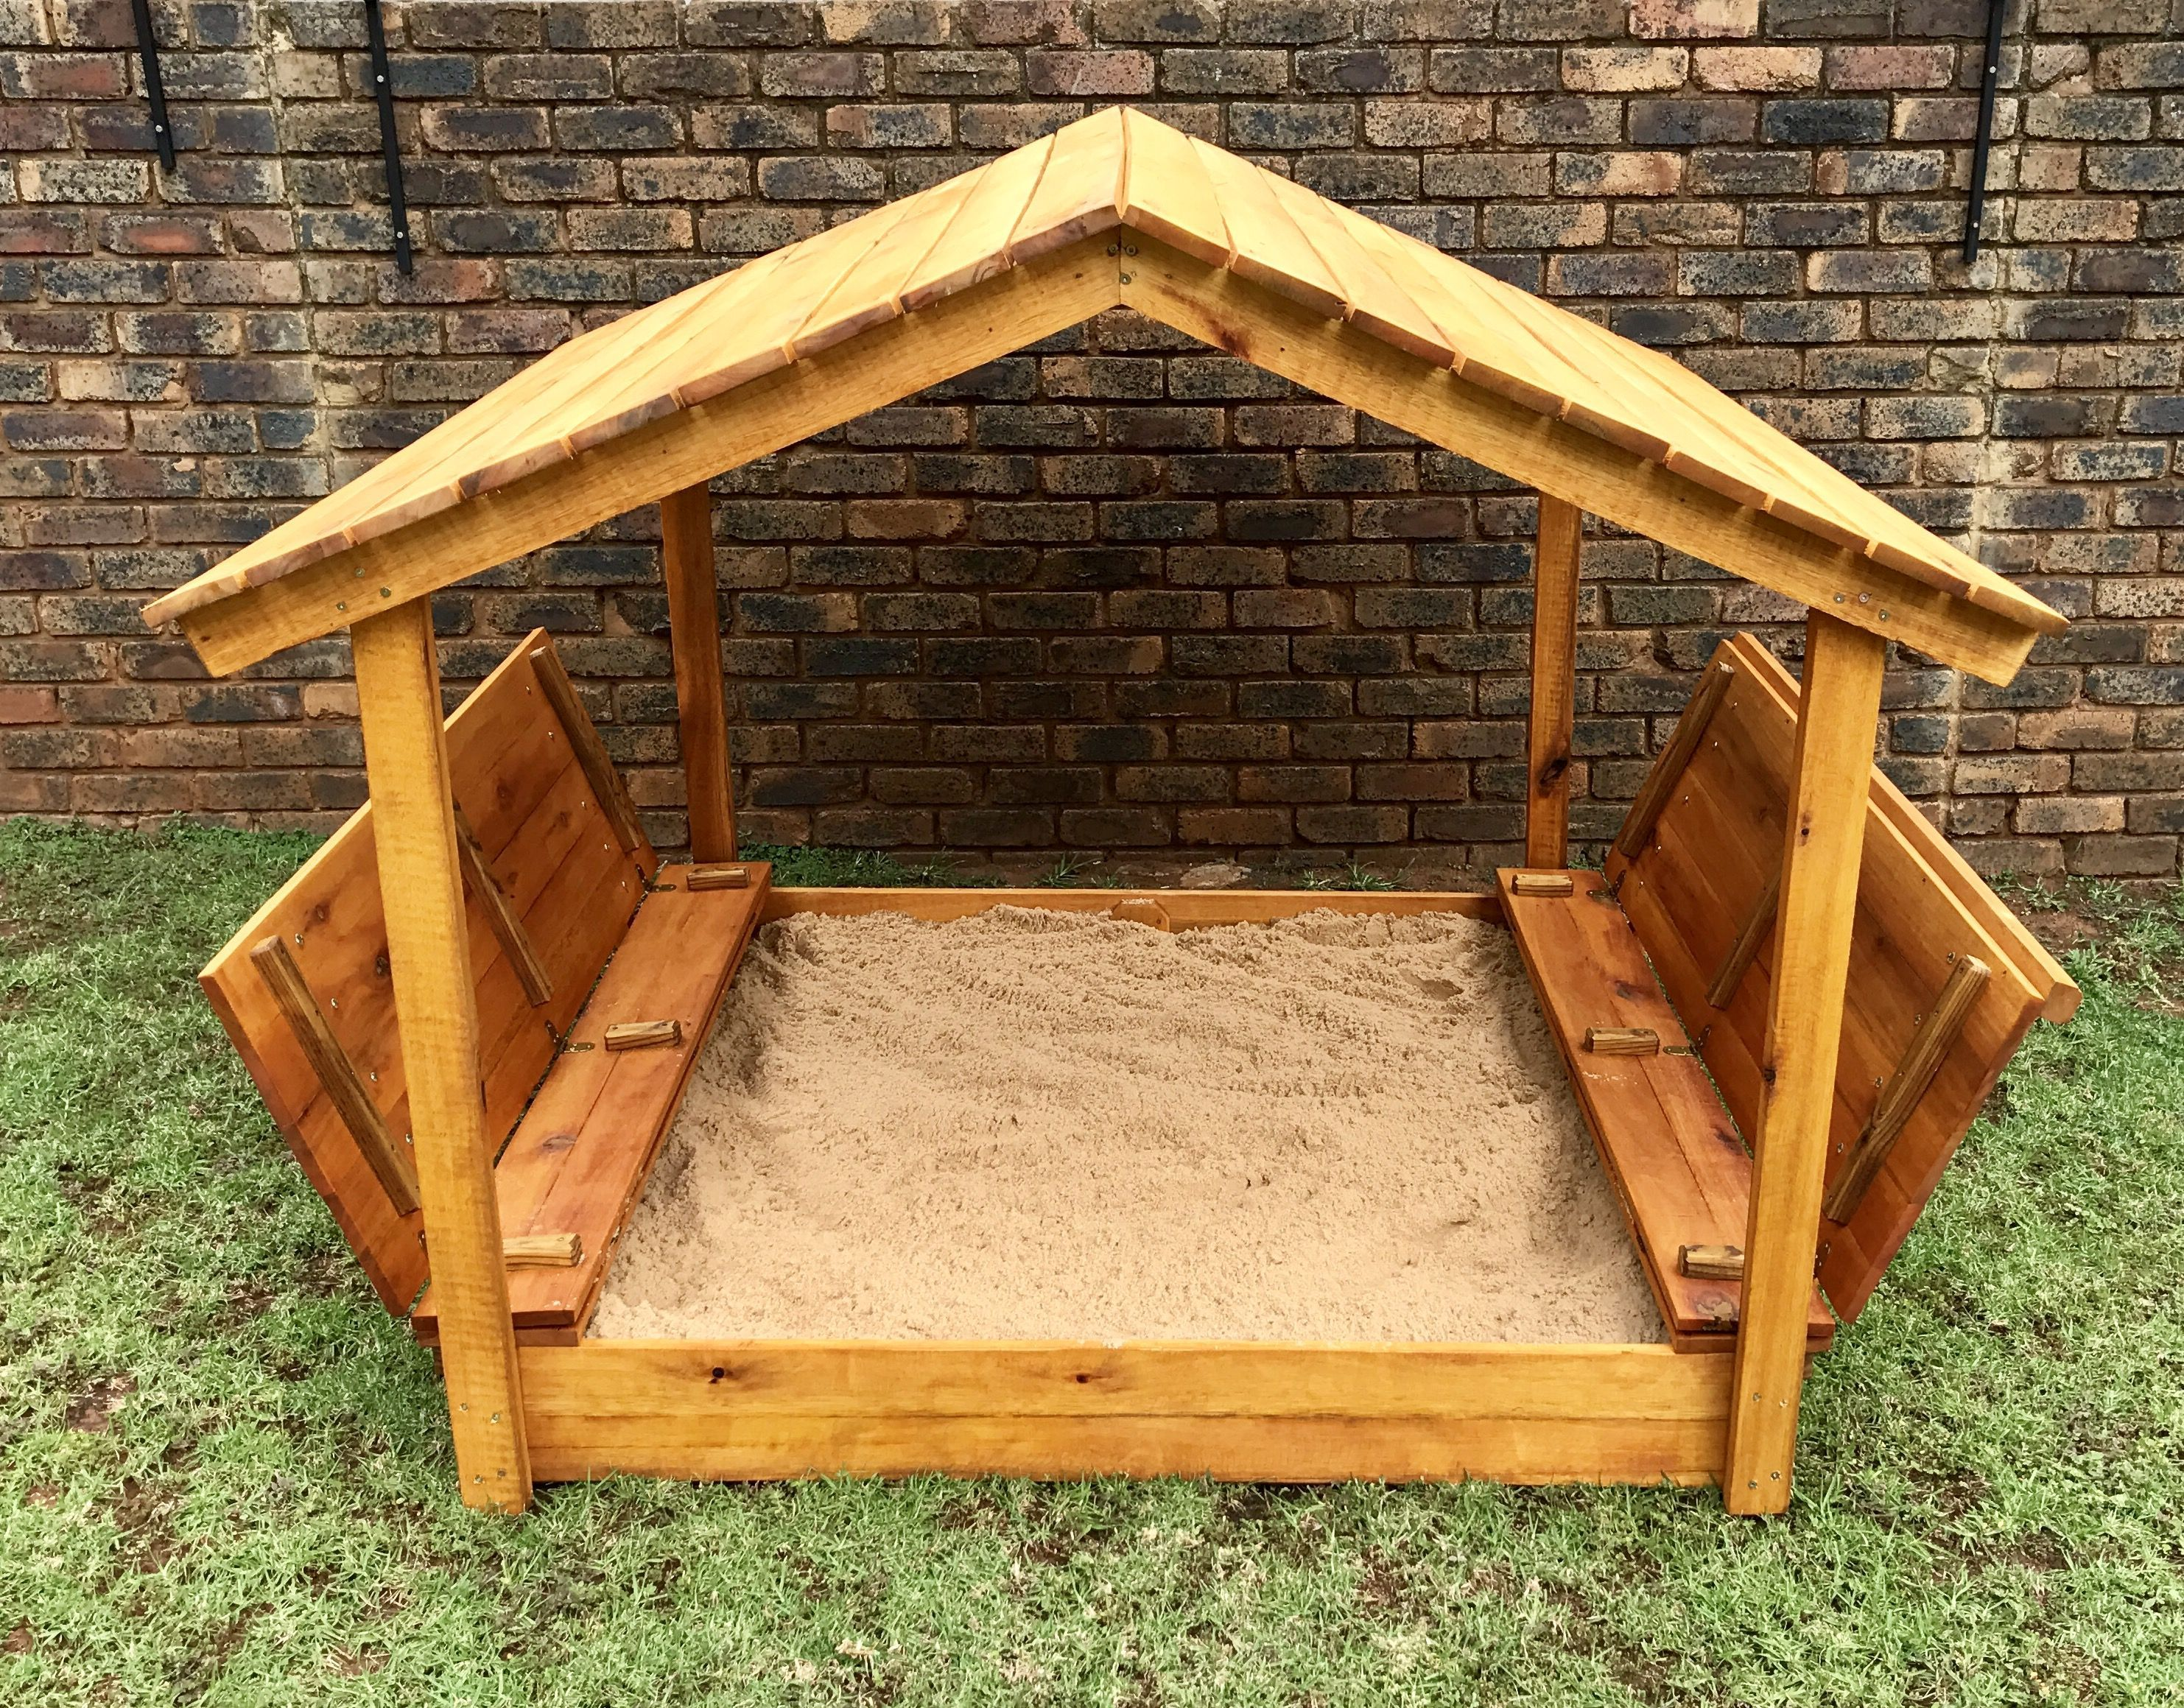 Covered sandboxwith lid image 0 shade cover sand pit